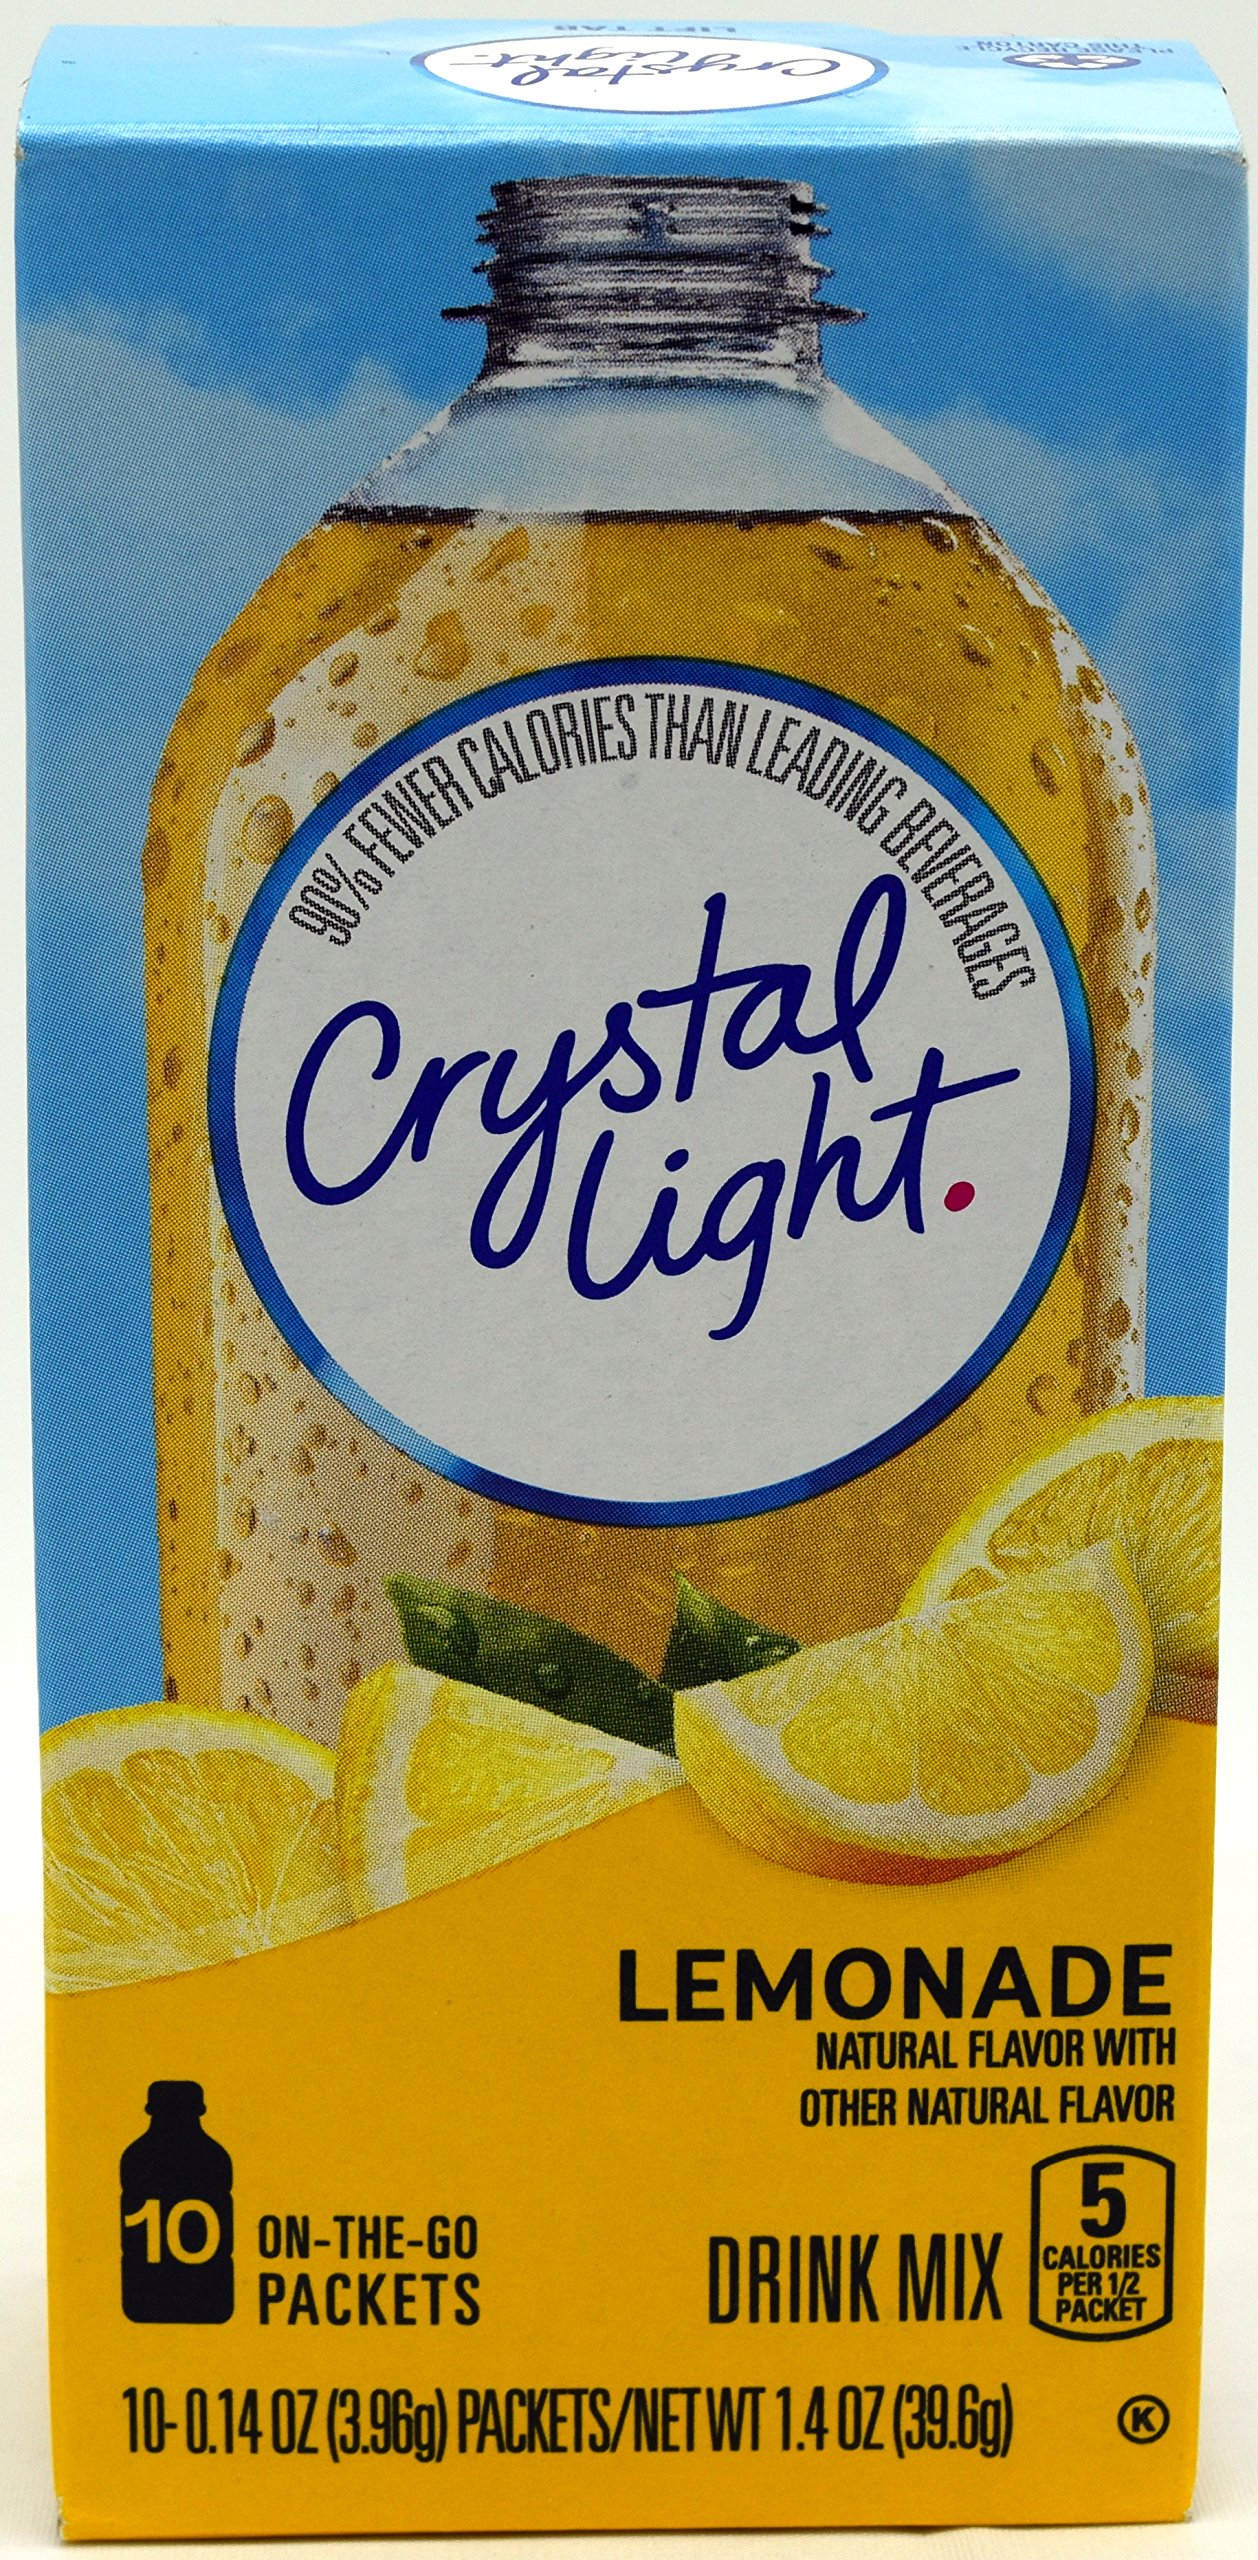 Crystal Light On The Go Natural Lemonade Drink Mix, 10-Packet Box (Pack of 8)